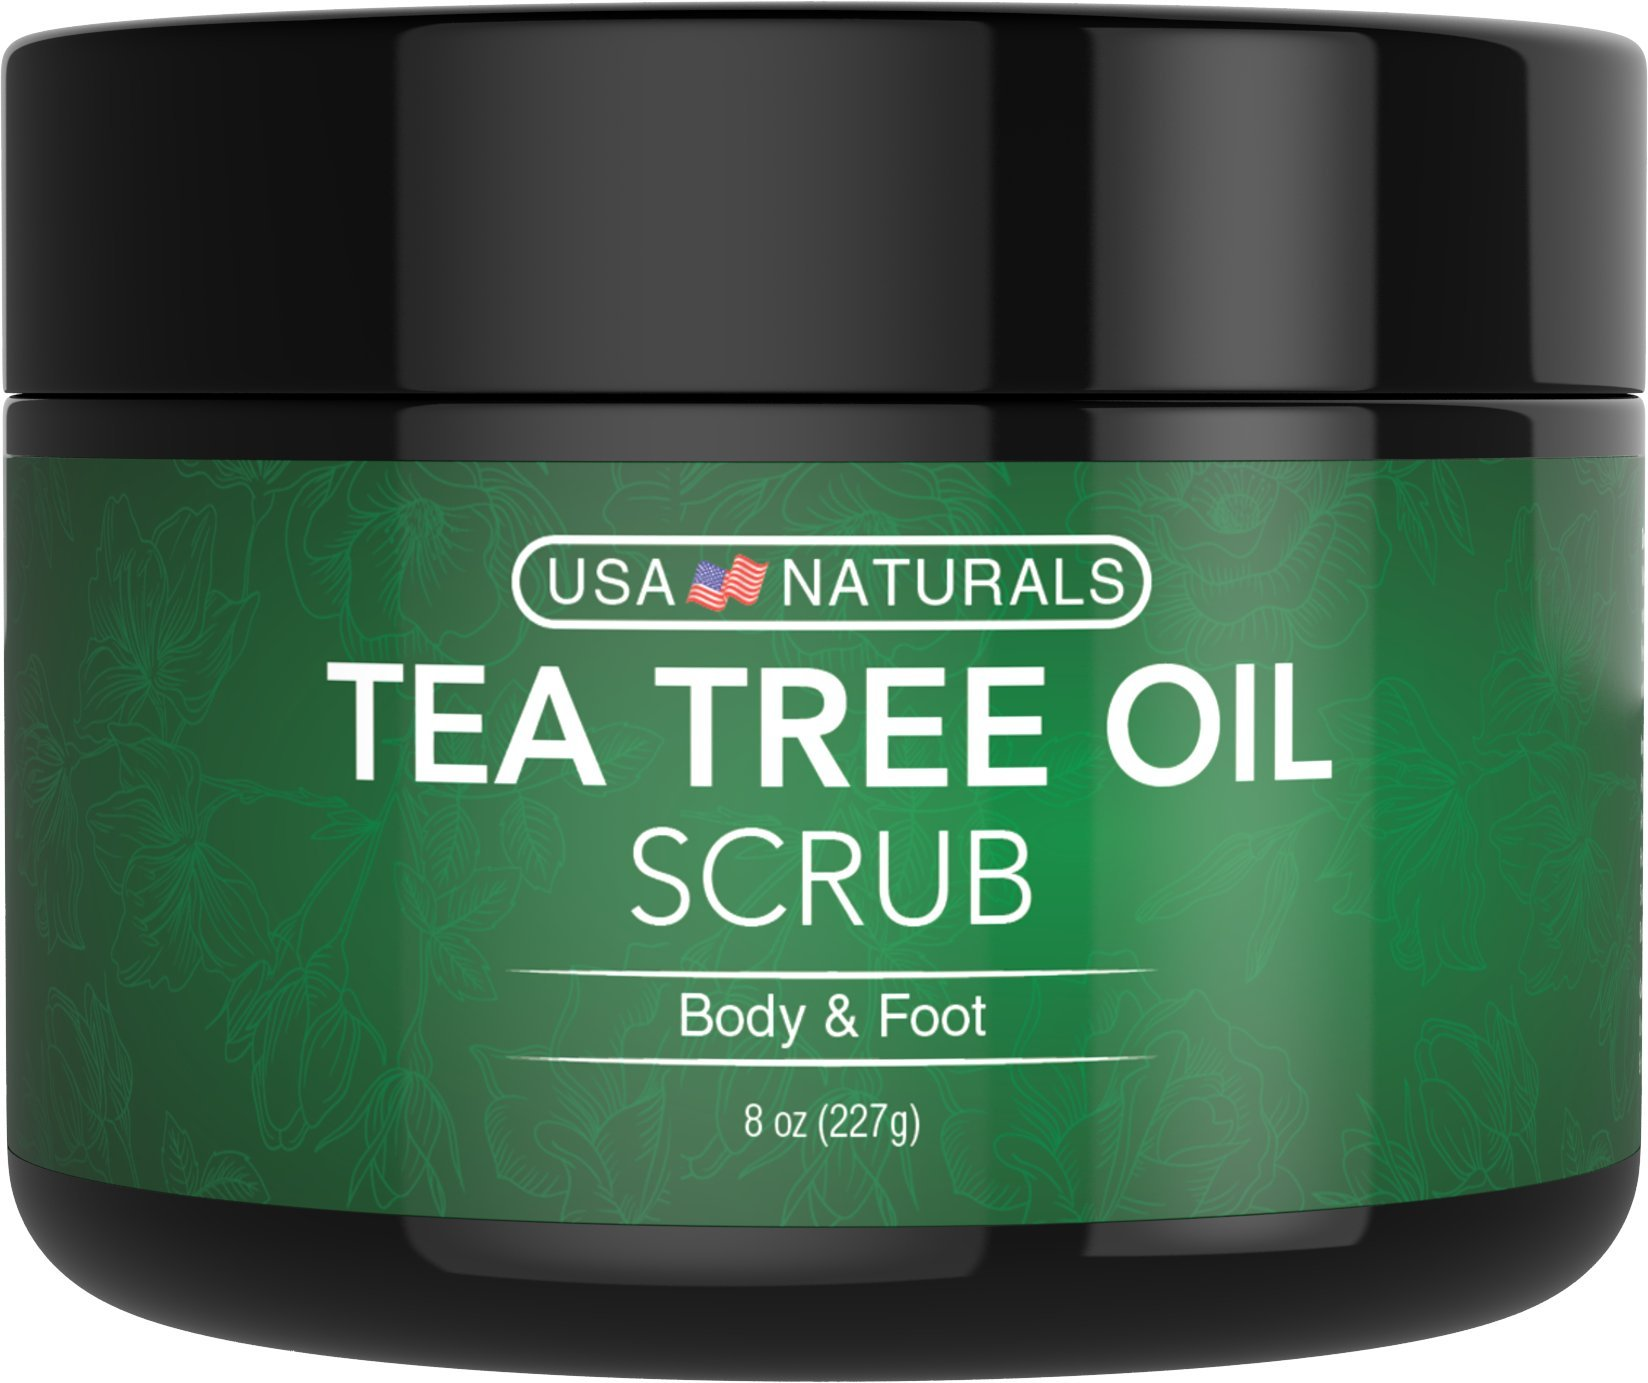 Tea Tree Oil Foot and Body Scrub - Antifungal Treatment - Exfoliating Scrub with a Unique Blend of Essential Oils - Smooths Calluses - Helps With Athlete's Foot, Acne, Jock Itch & Dead, Dry Skin by USA Naturals